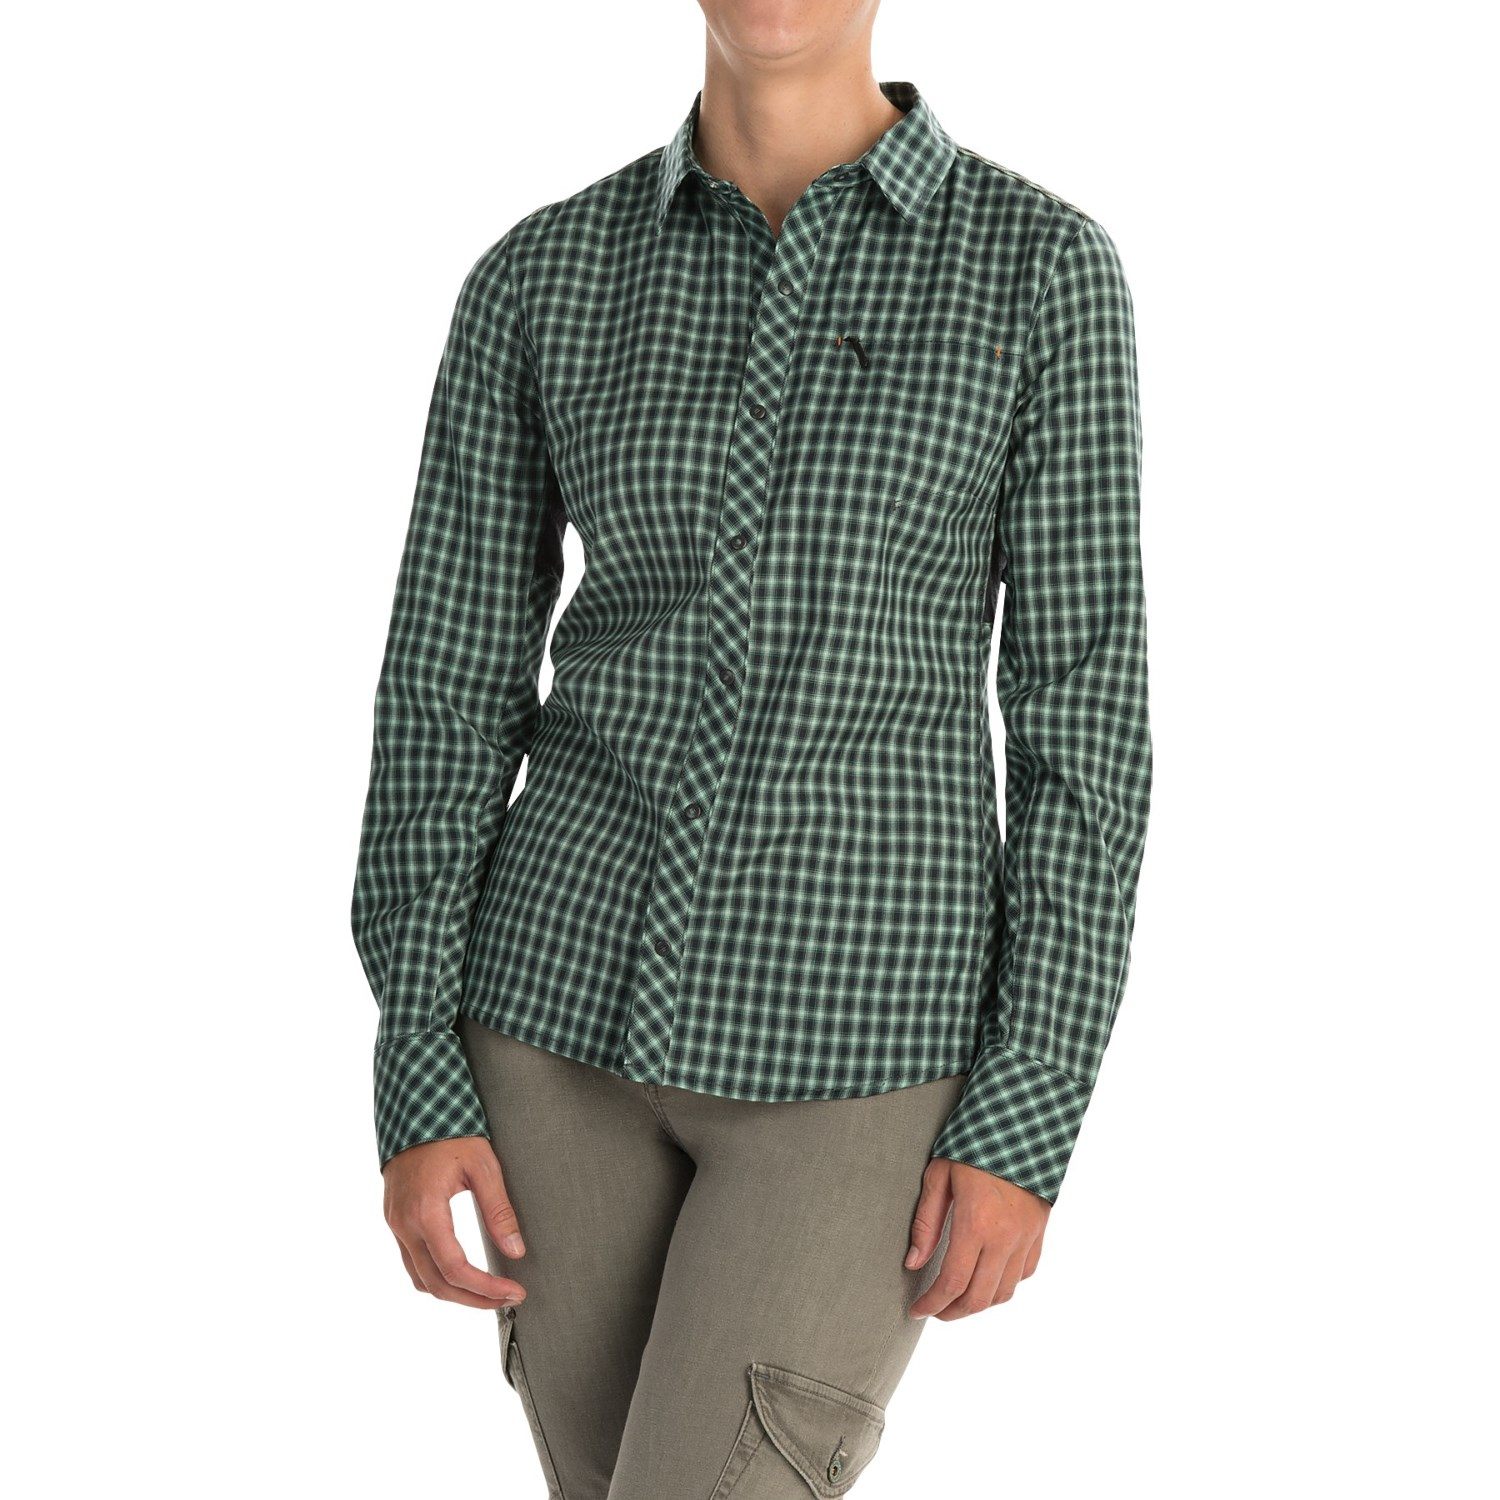 Icebreaker Terra Plaid Shirt (For Women) - Save 50%